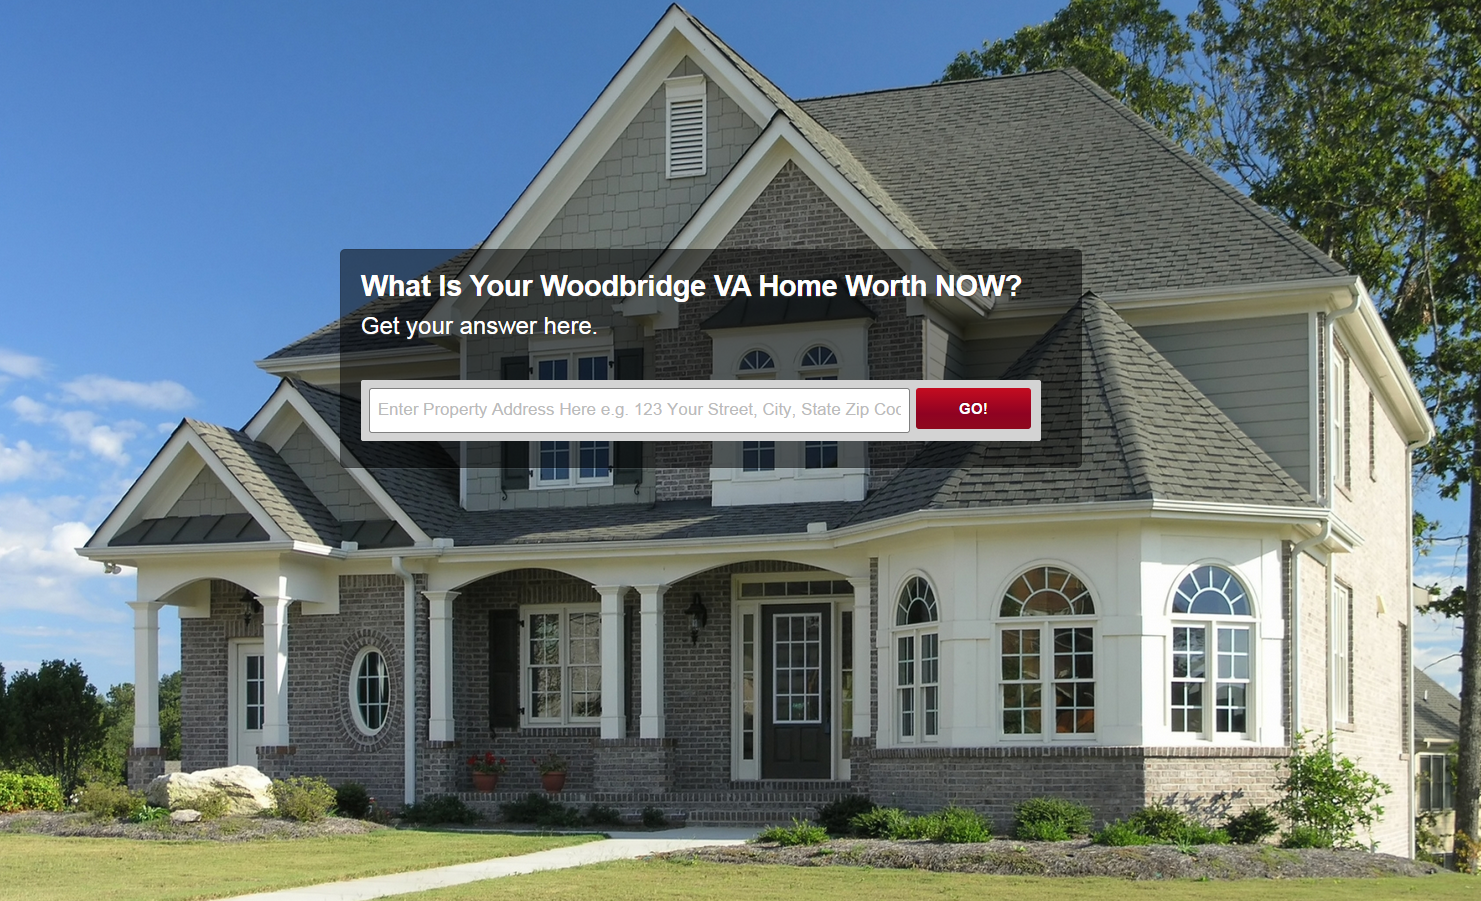 Rise Com Loan Reviews >> Find out your Dale City Woodbridge VA Home Value - Claudia S. Nelson